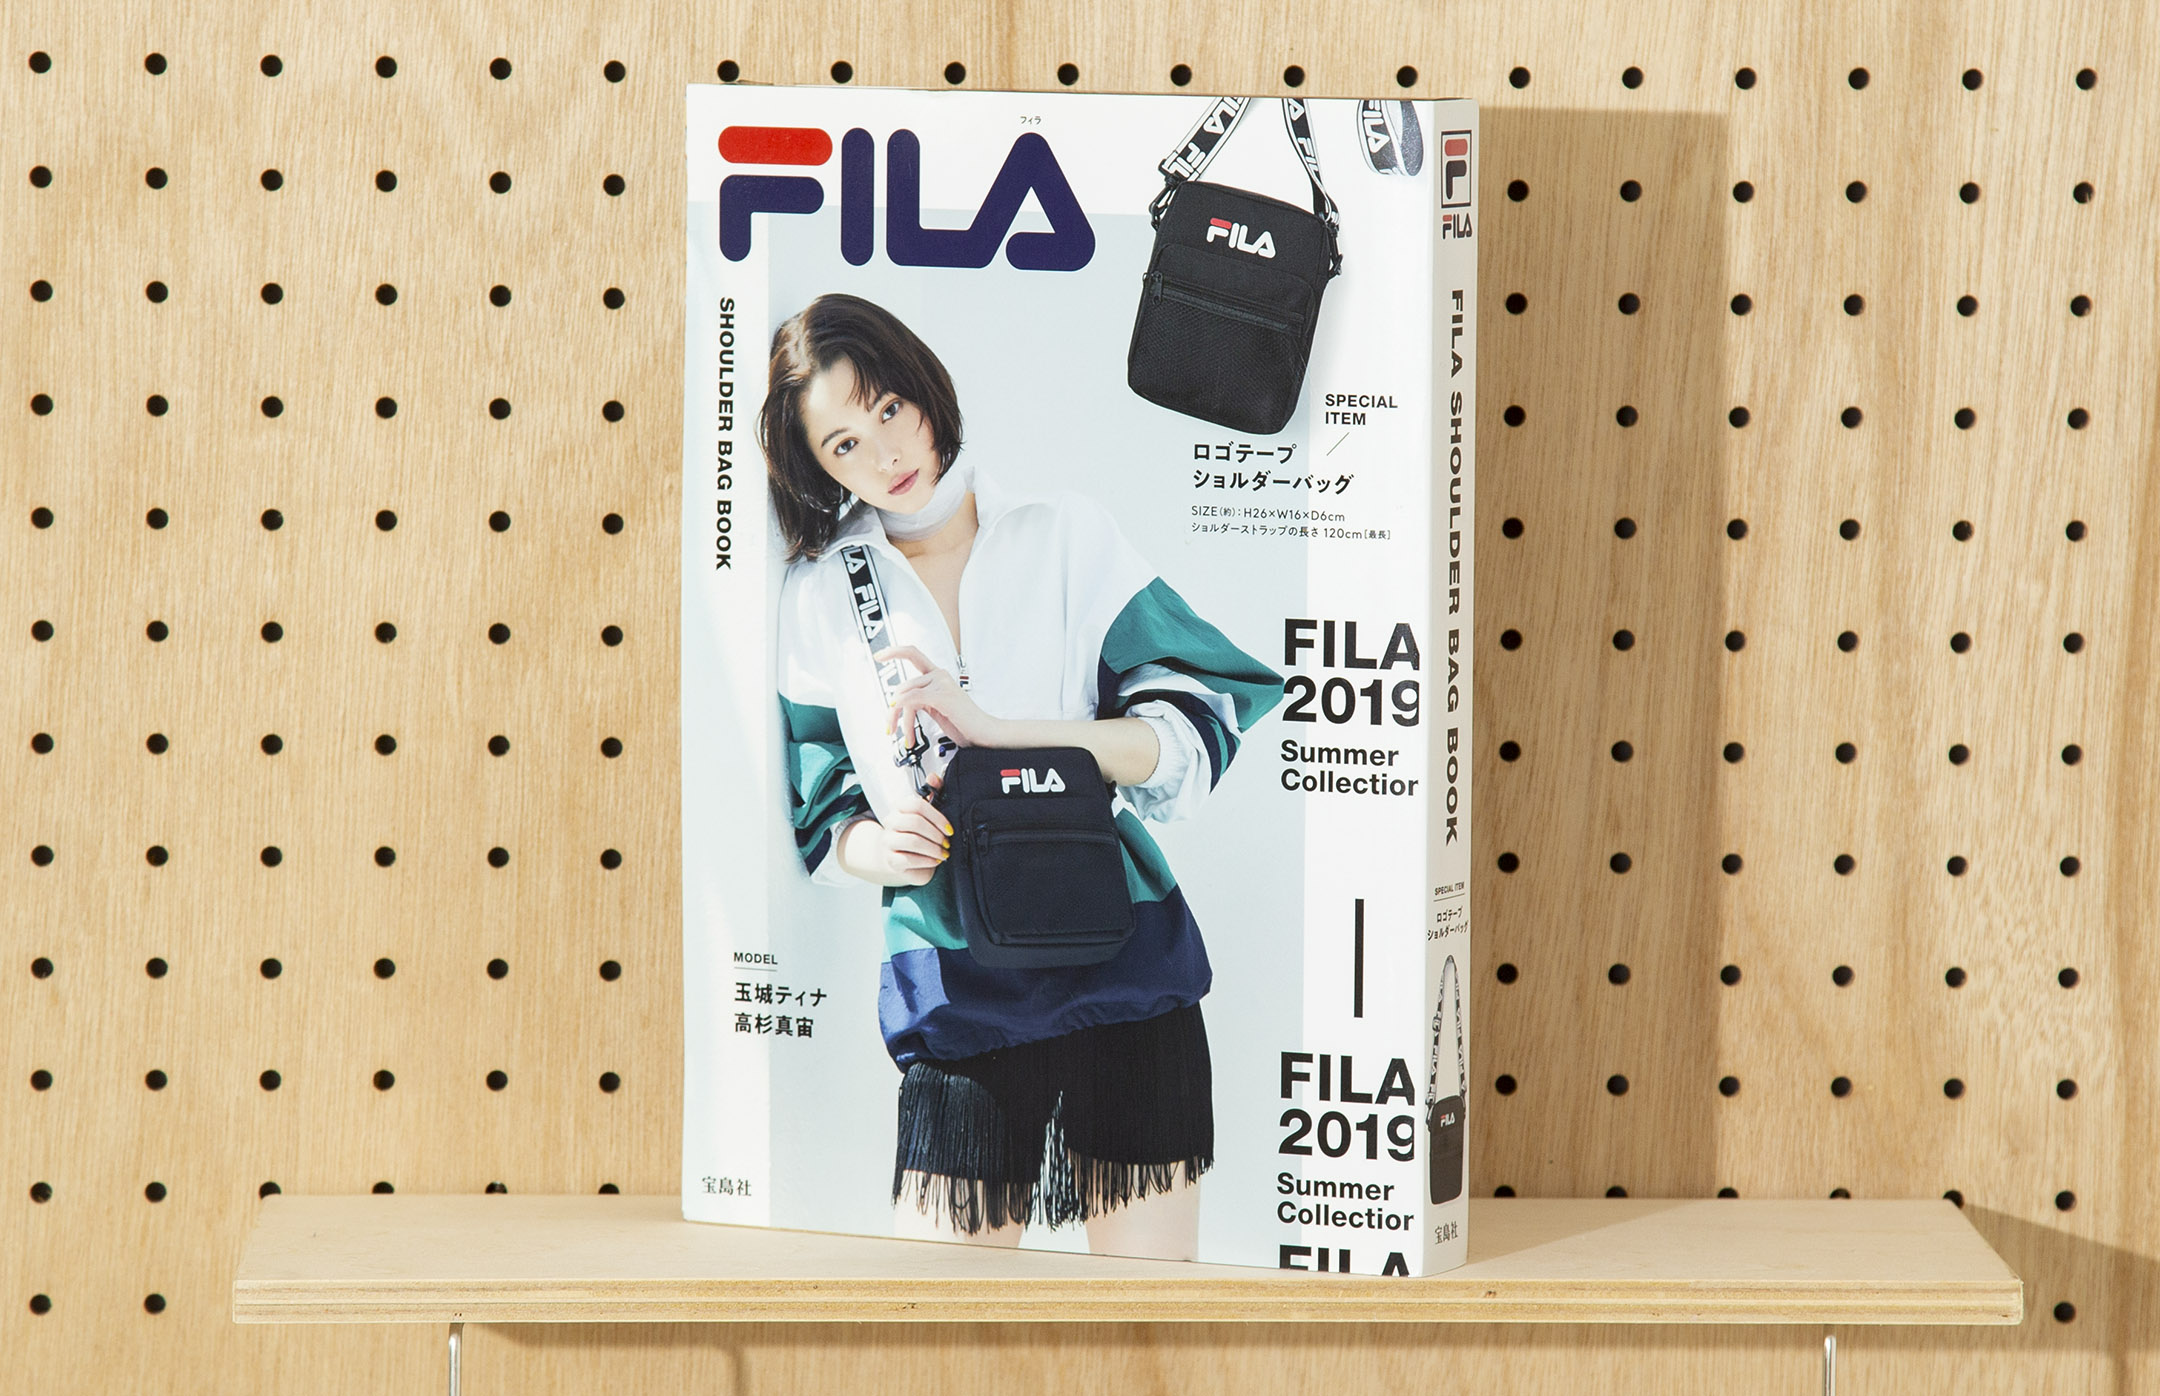 FILA 2019 Summer Collection